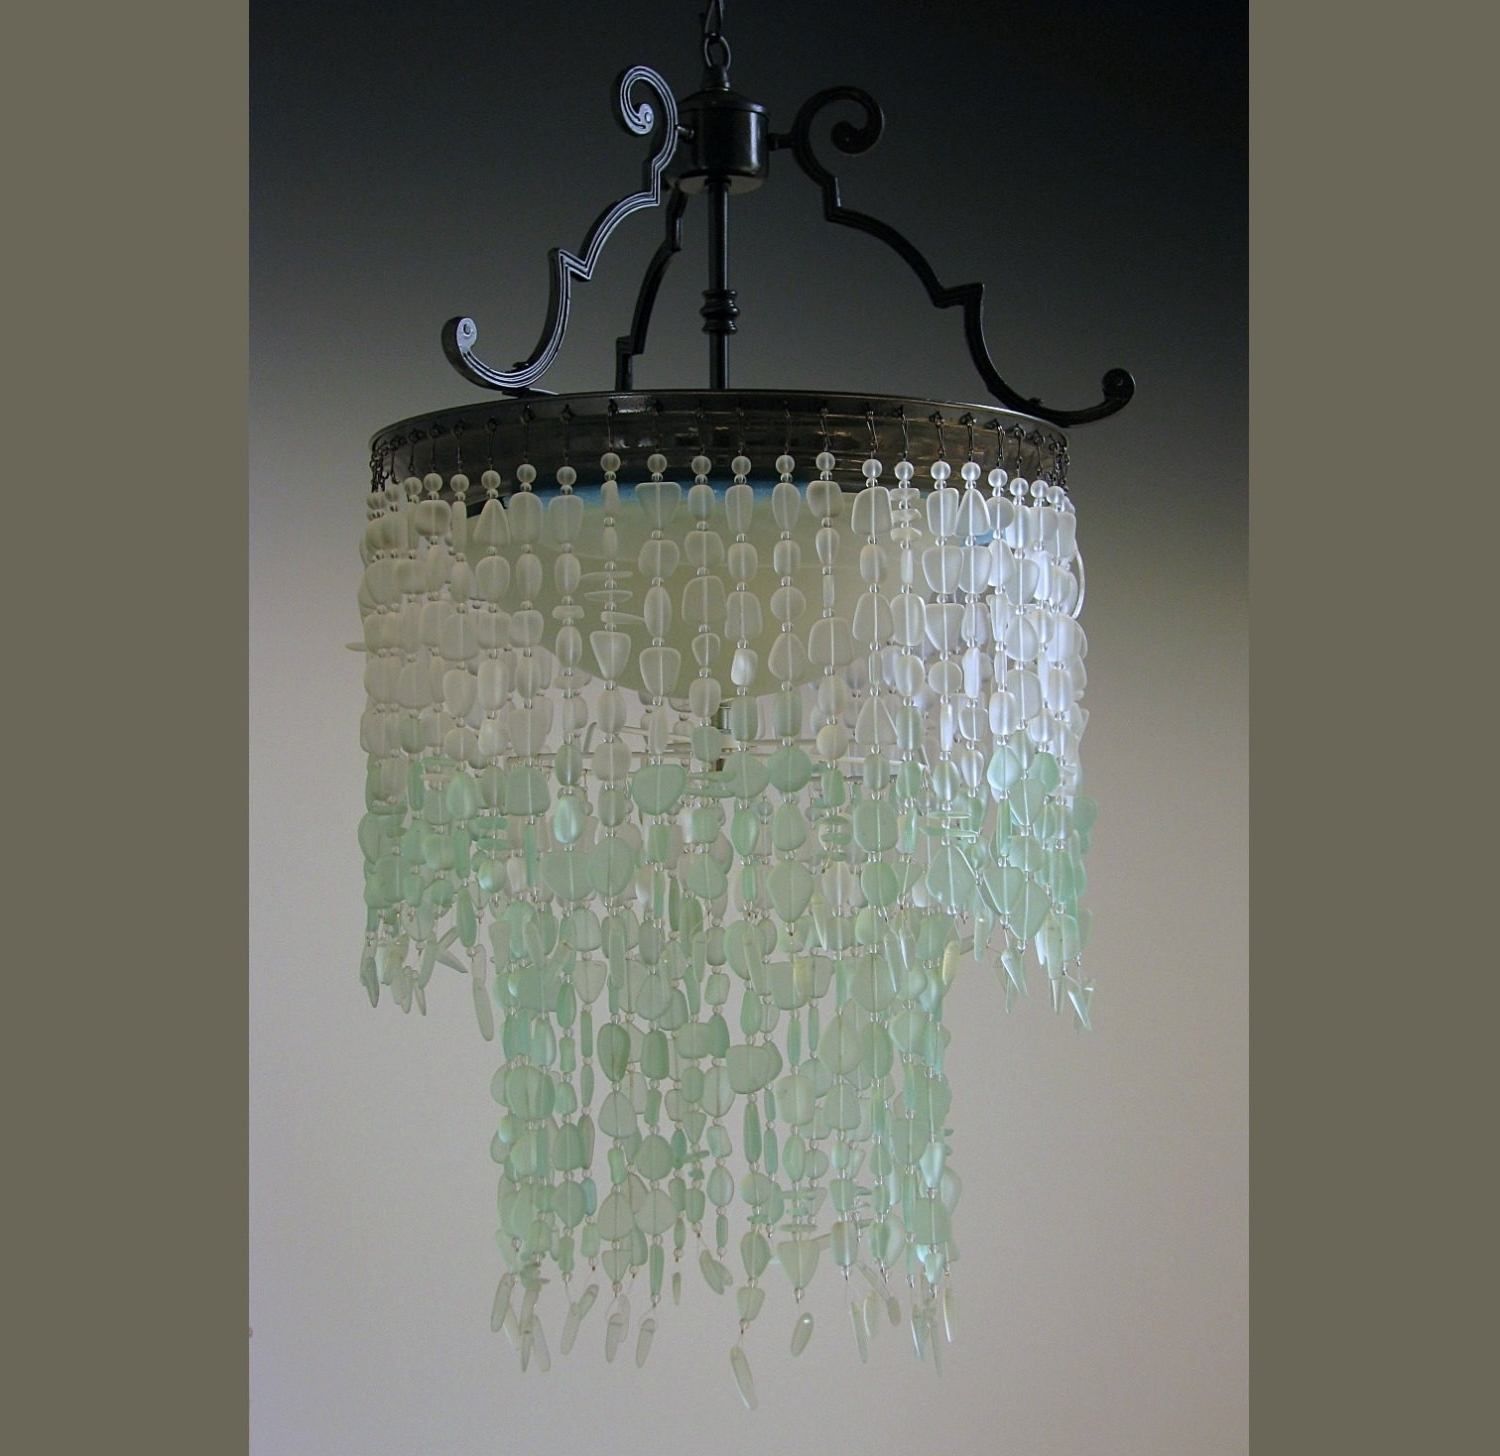 Turquoise Blue Glass Chandeliers Throughout Famous Chandeliers : Sea Glass Chandelier Awesome Chandelier Turquoise Blue (View 11 of 20)